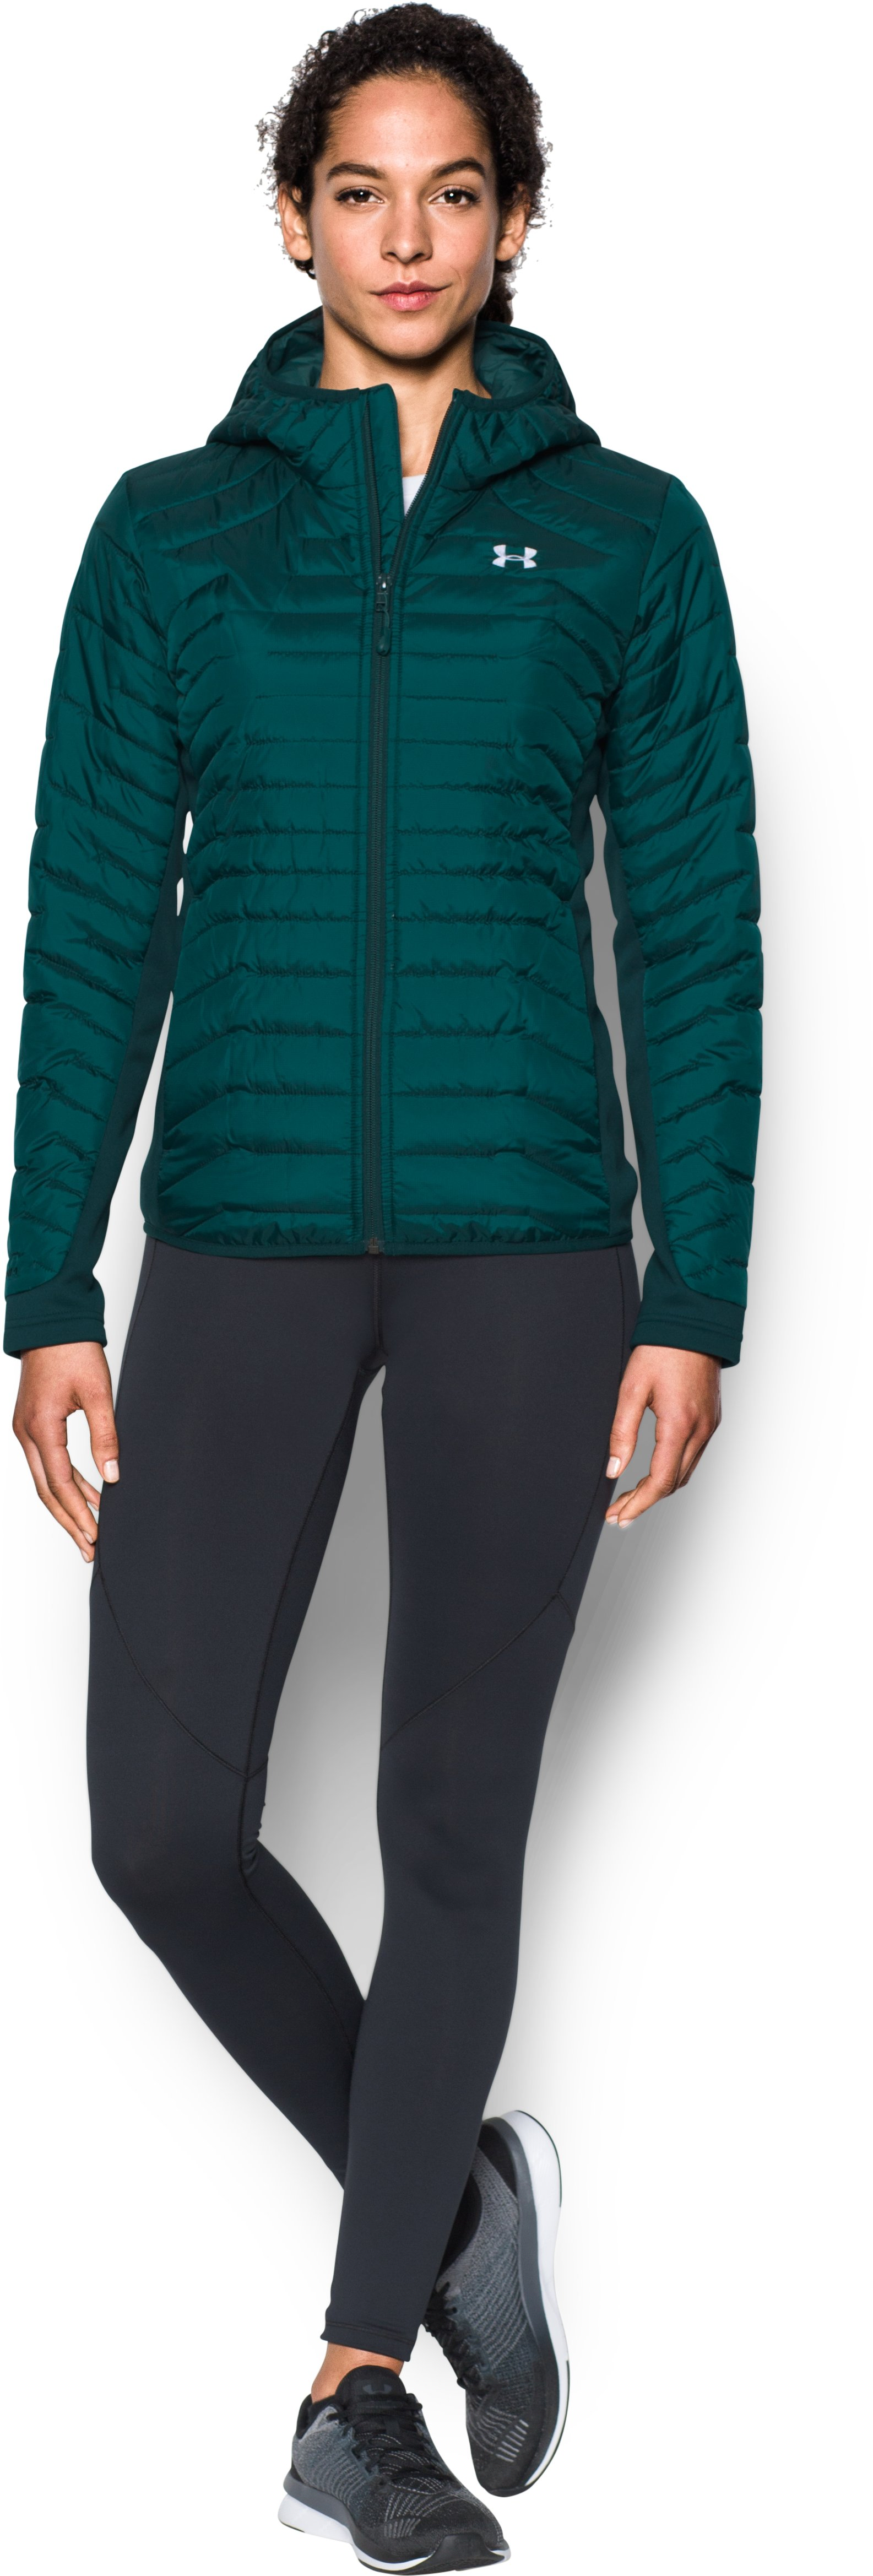 Women's ColdGear® Reactor Hybrid Jacket, ARDEN GREEN, Front